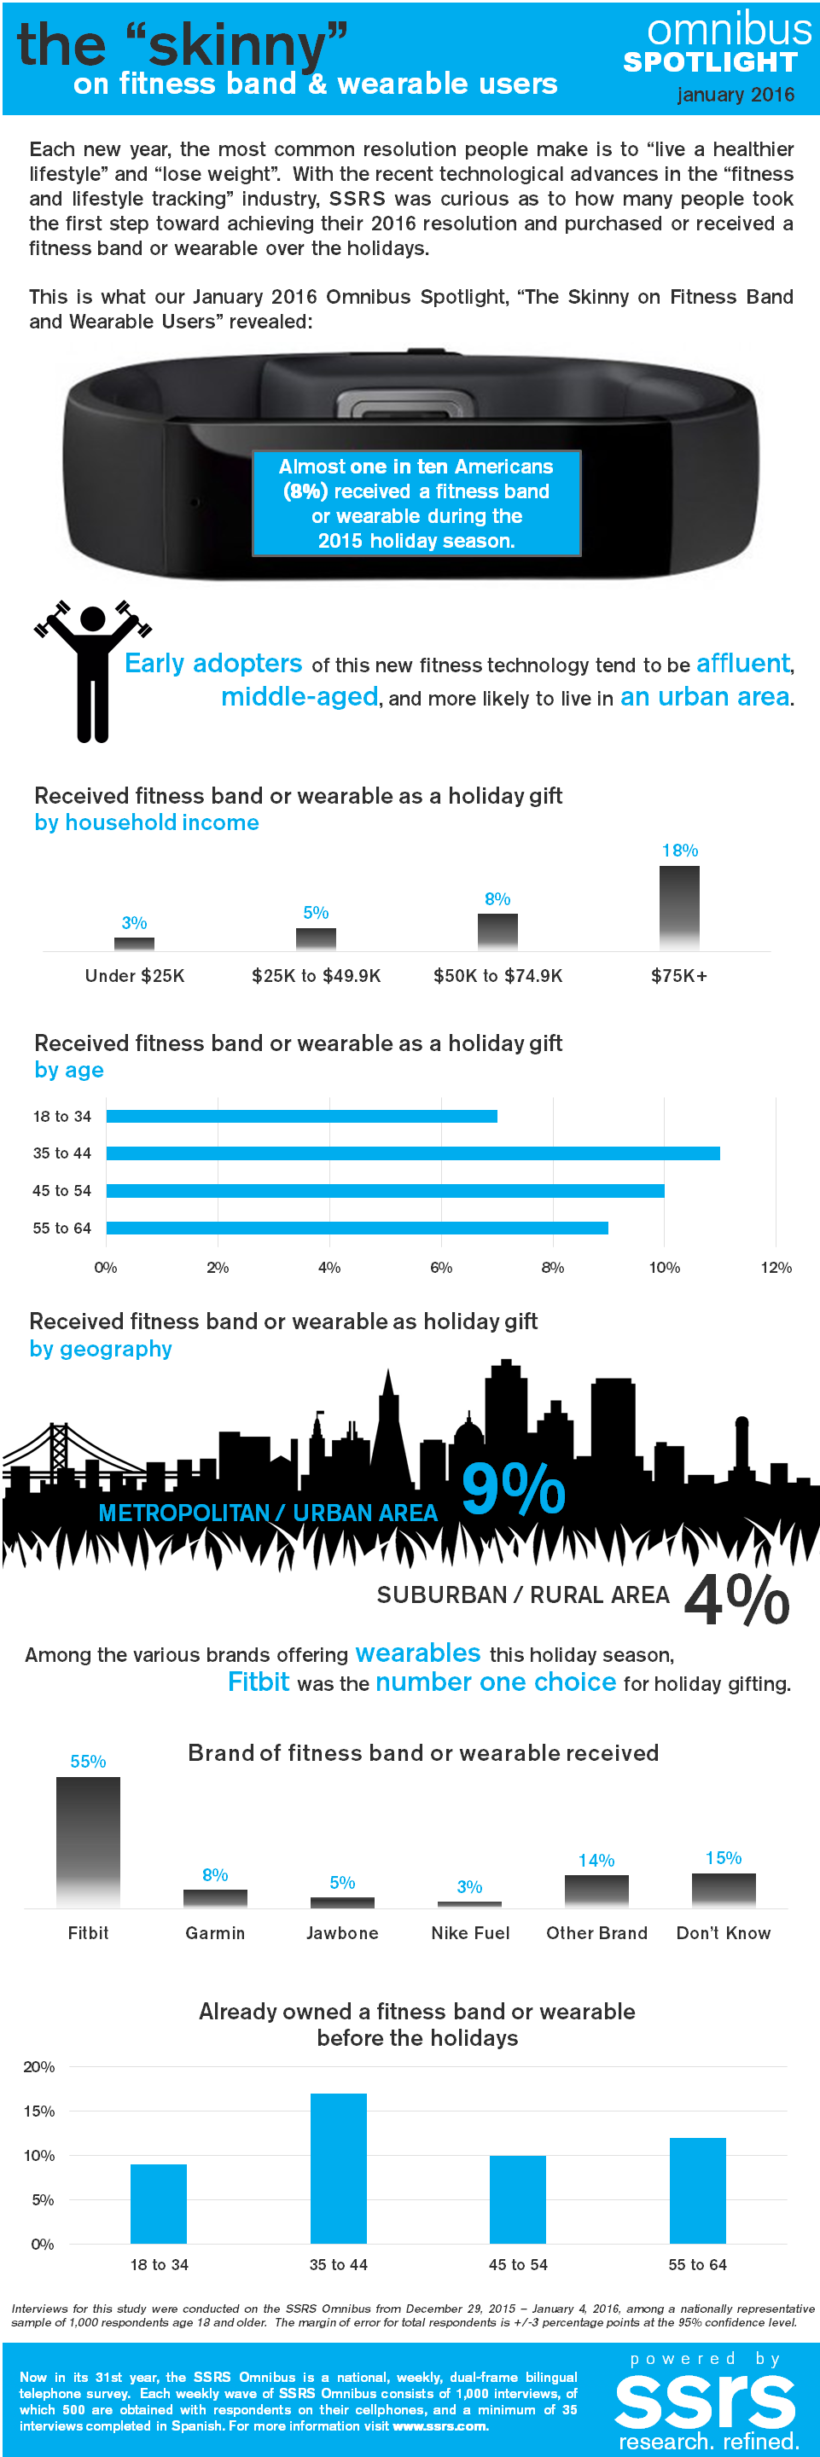 The Skinny on Fitness Band and Wearable Users